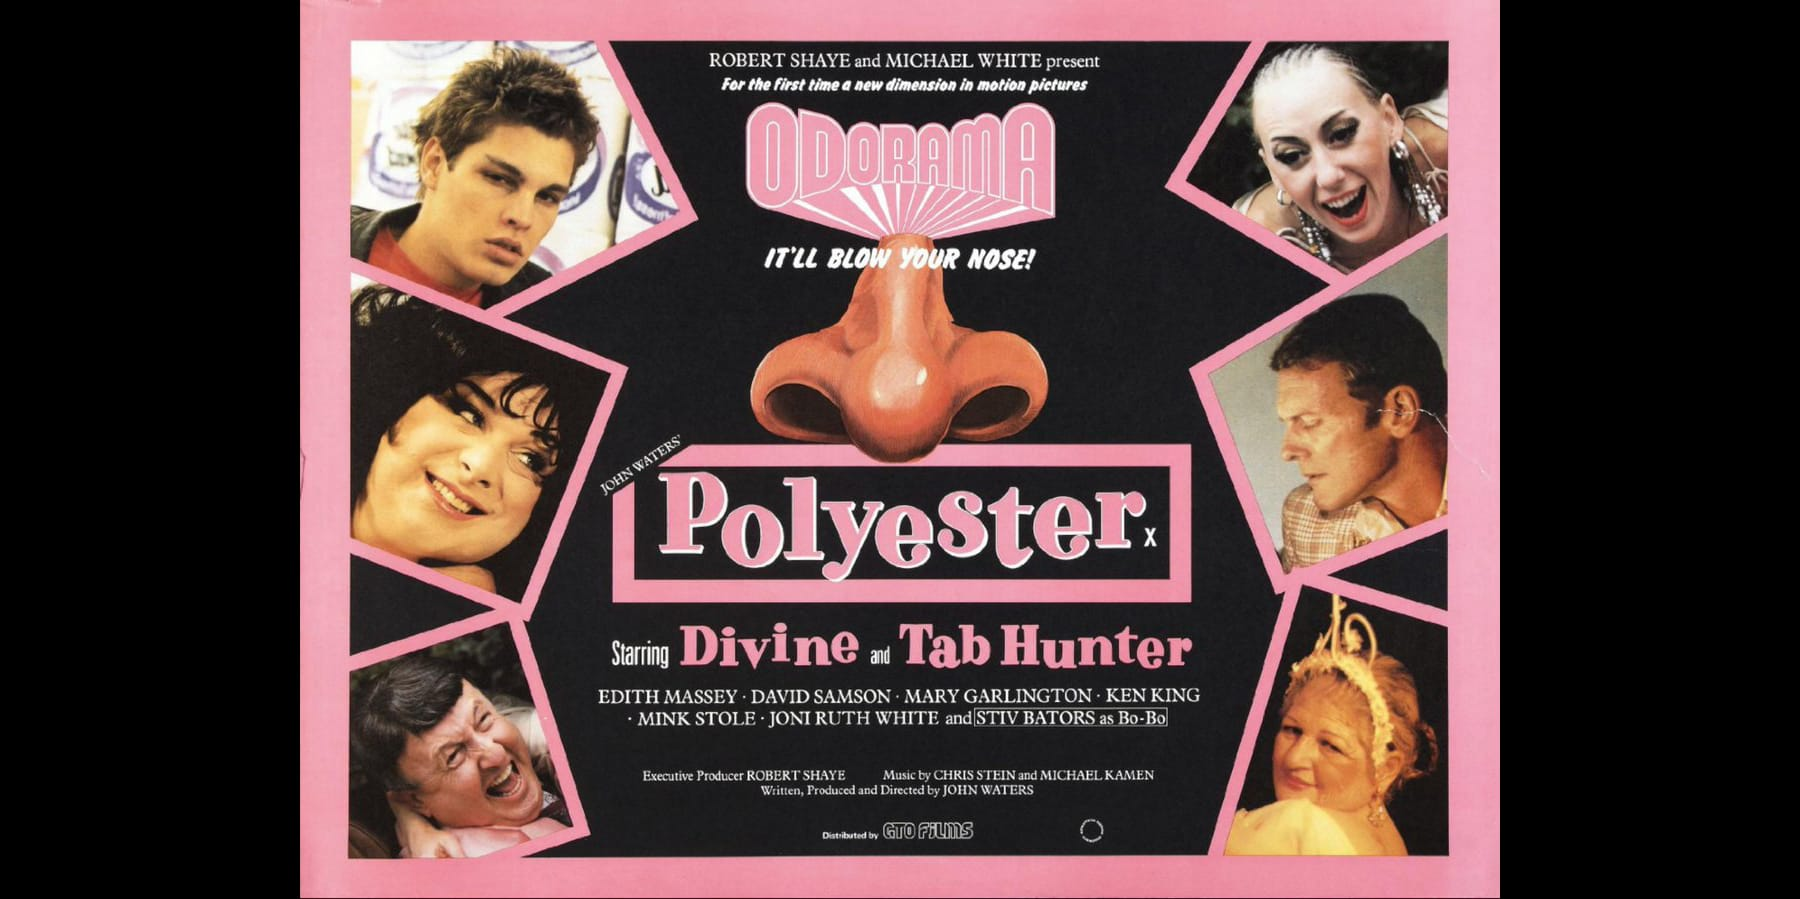 Monday 01.04.19. – 8pm: Odorama | Polyester – A John Waters Film